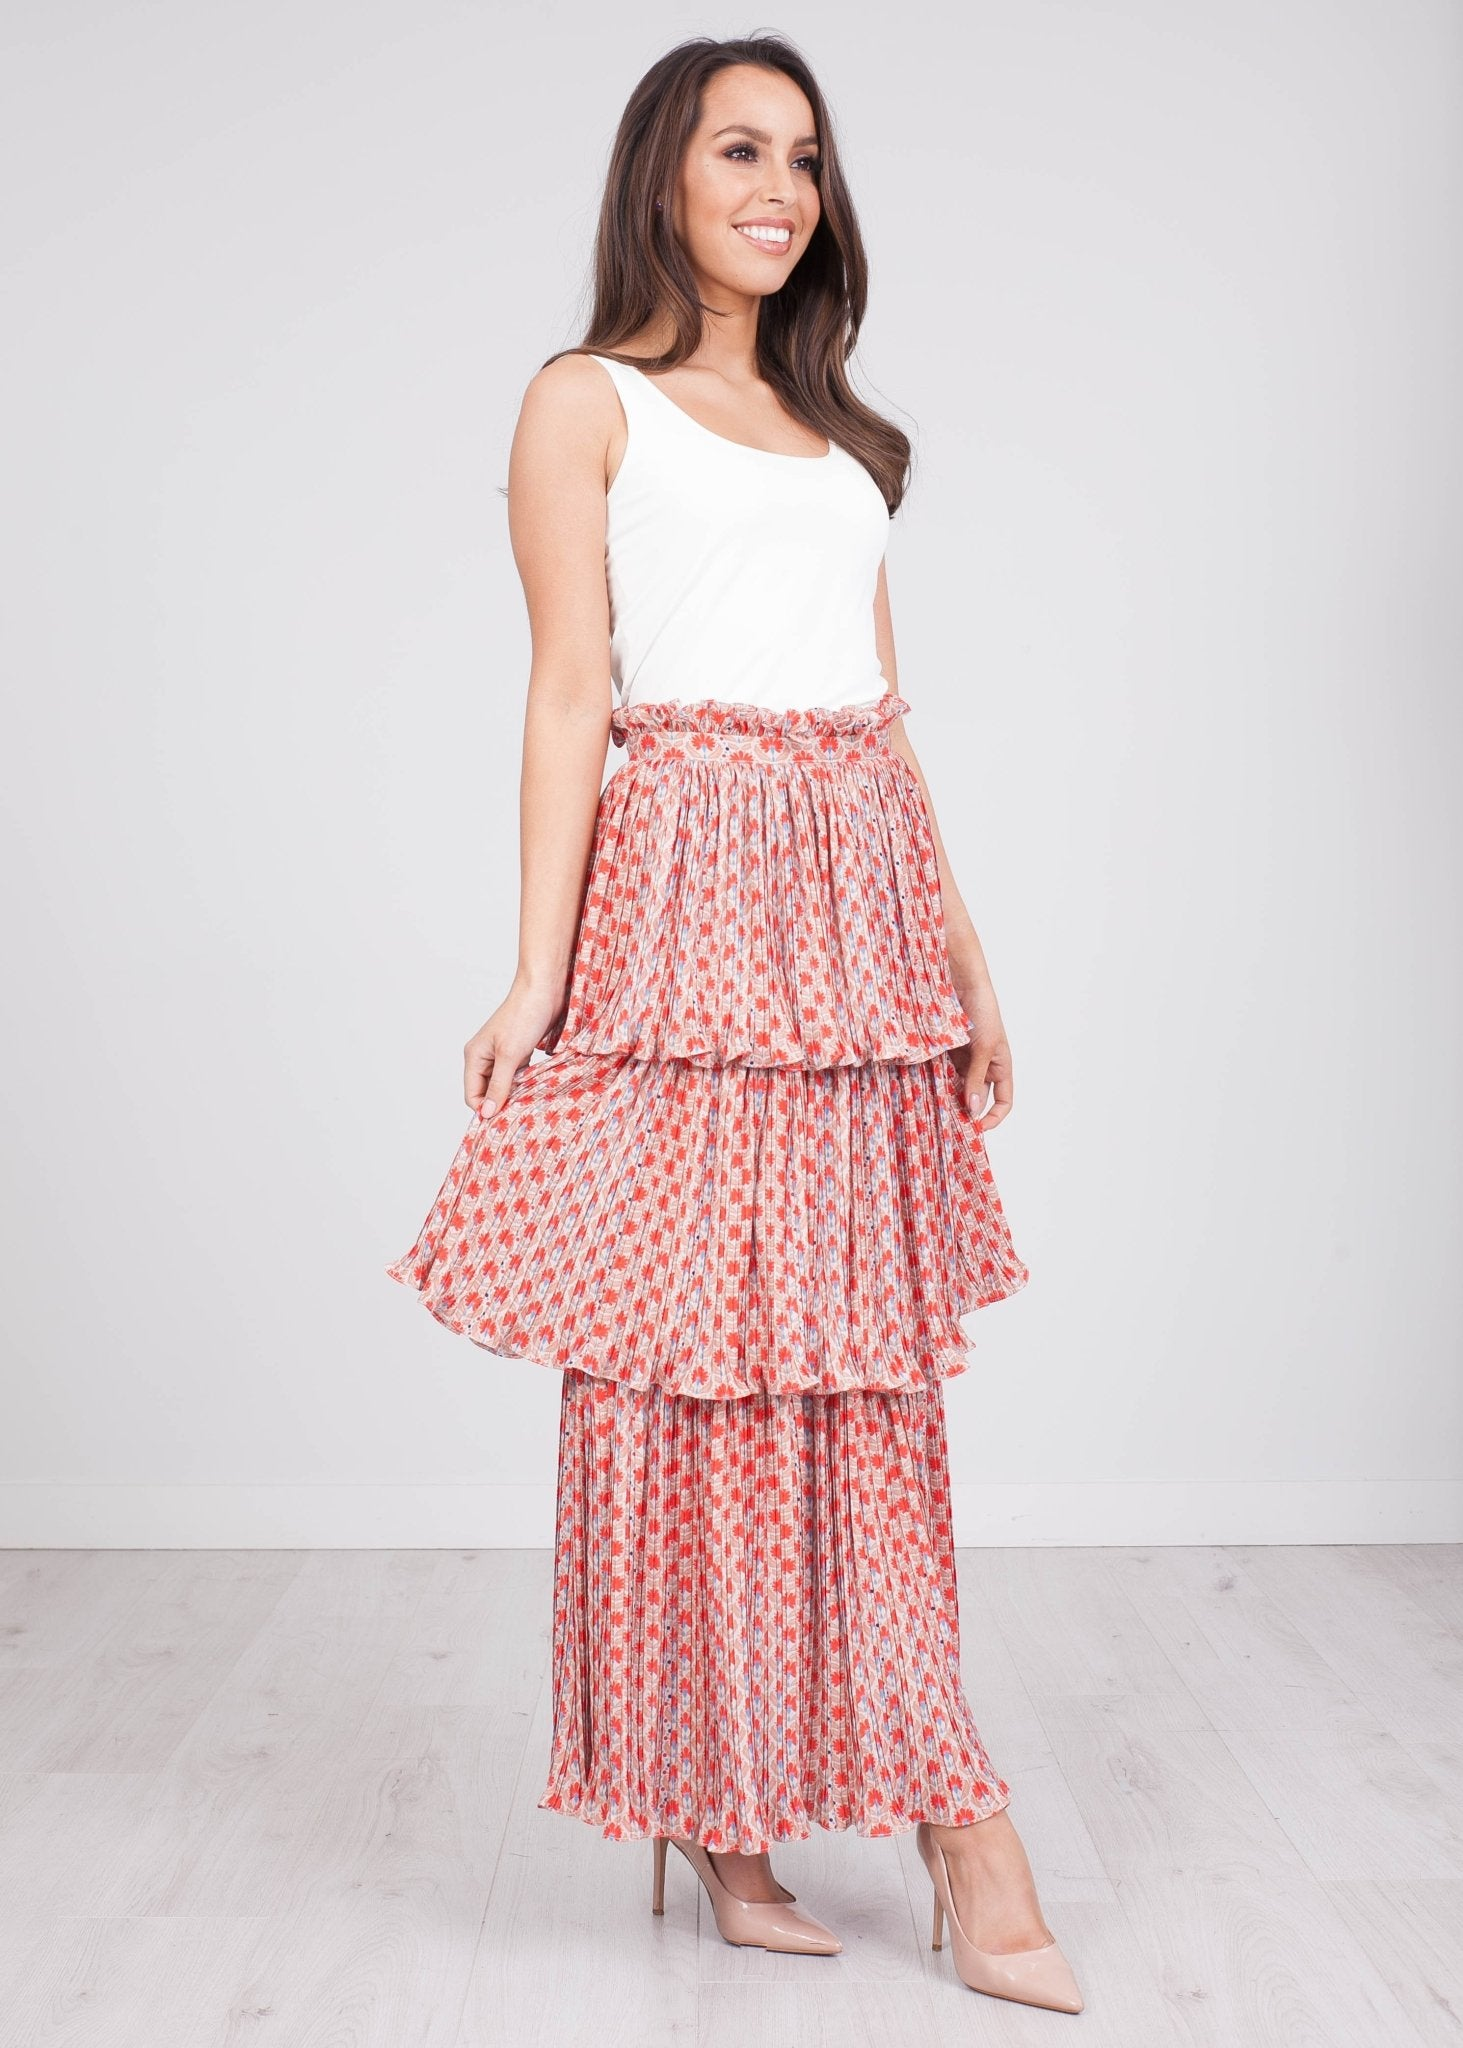 Eva Pattern Midi Skirt - The Walk in Wardrobe